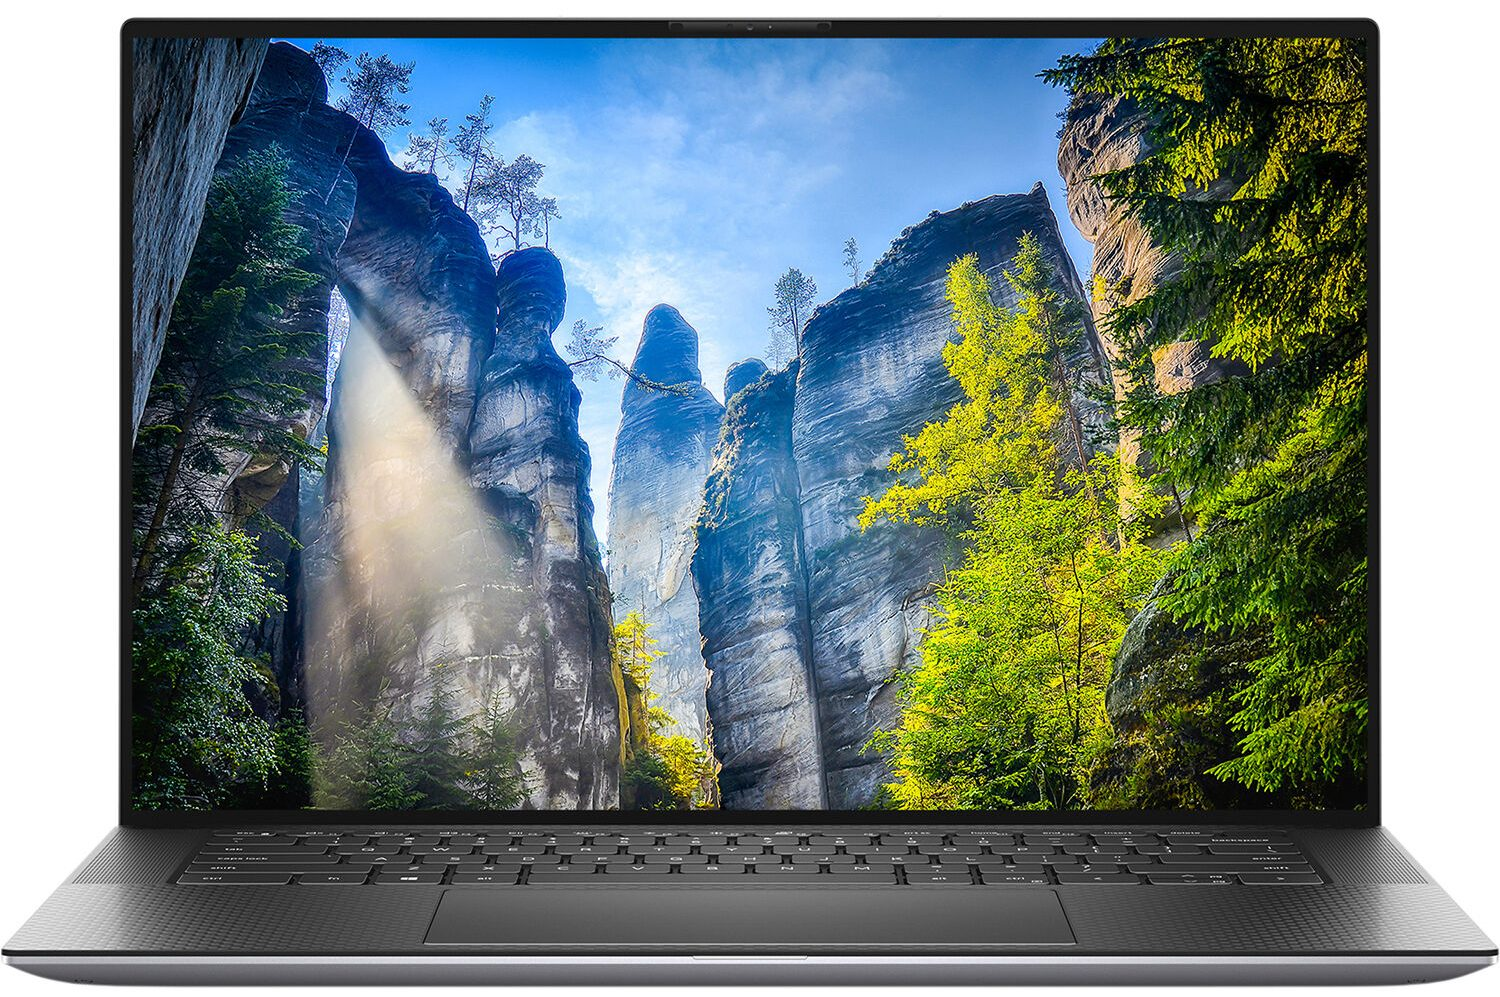 Dell Precision 5550 laptop review